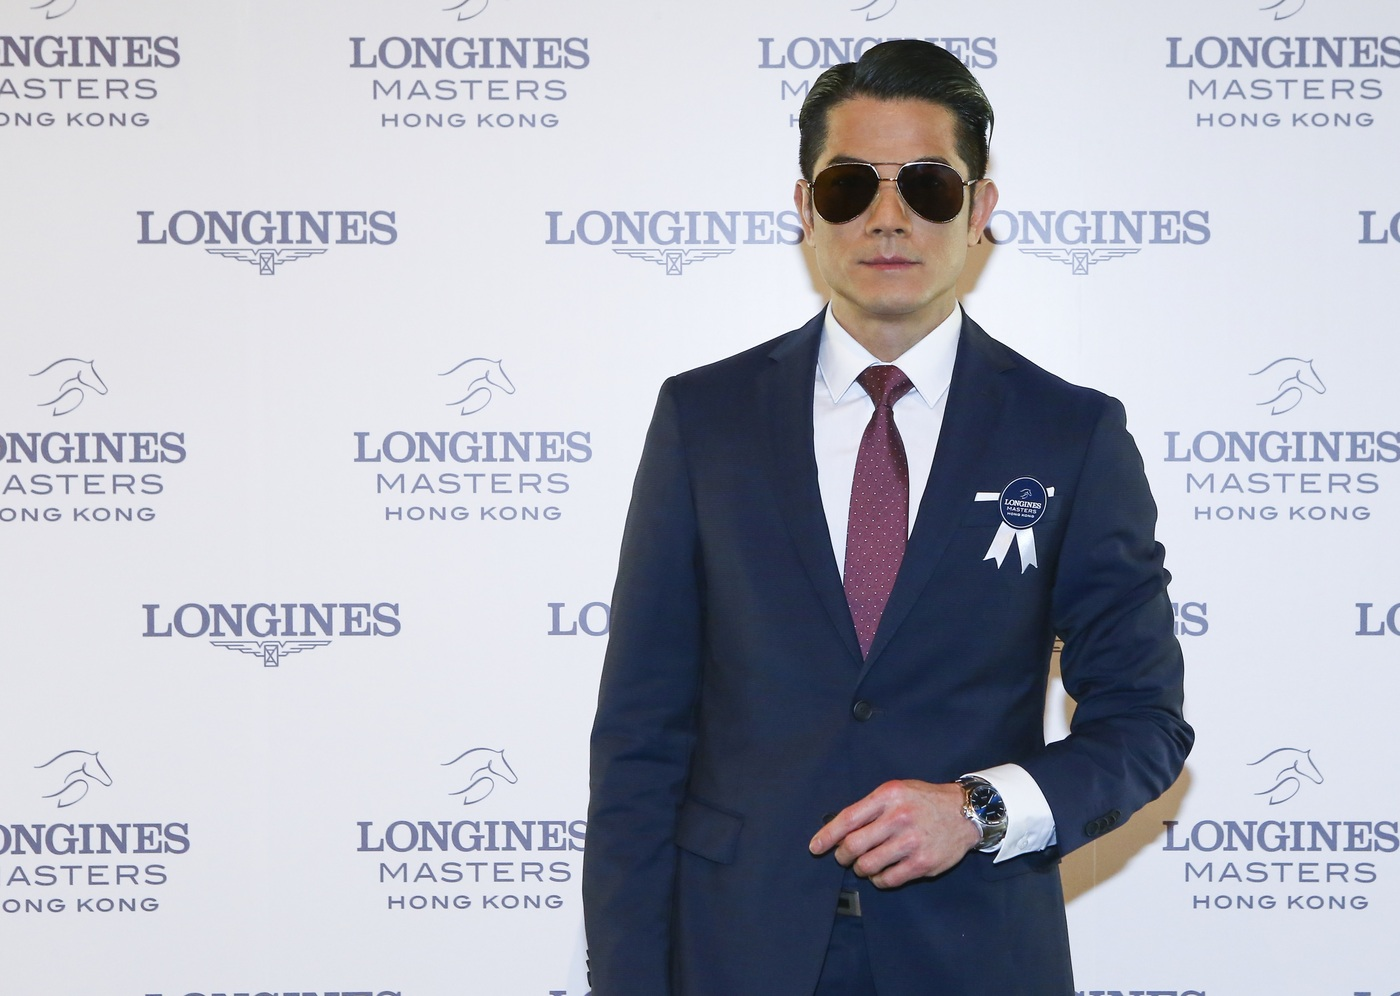 Longines Show Jumping Event: The 2019 Longines Masters of Hong Kong: a perfect mix of sports achievements and glamour  12